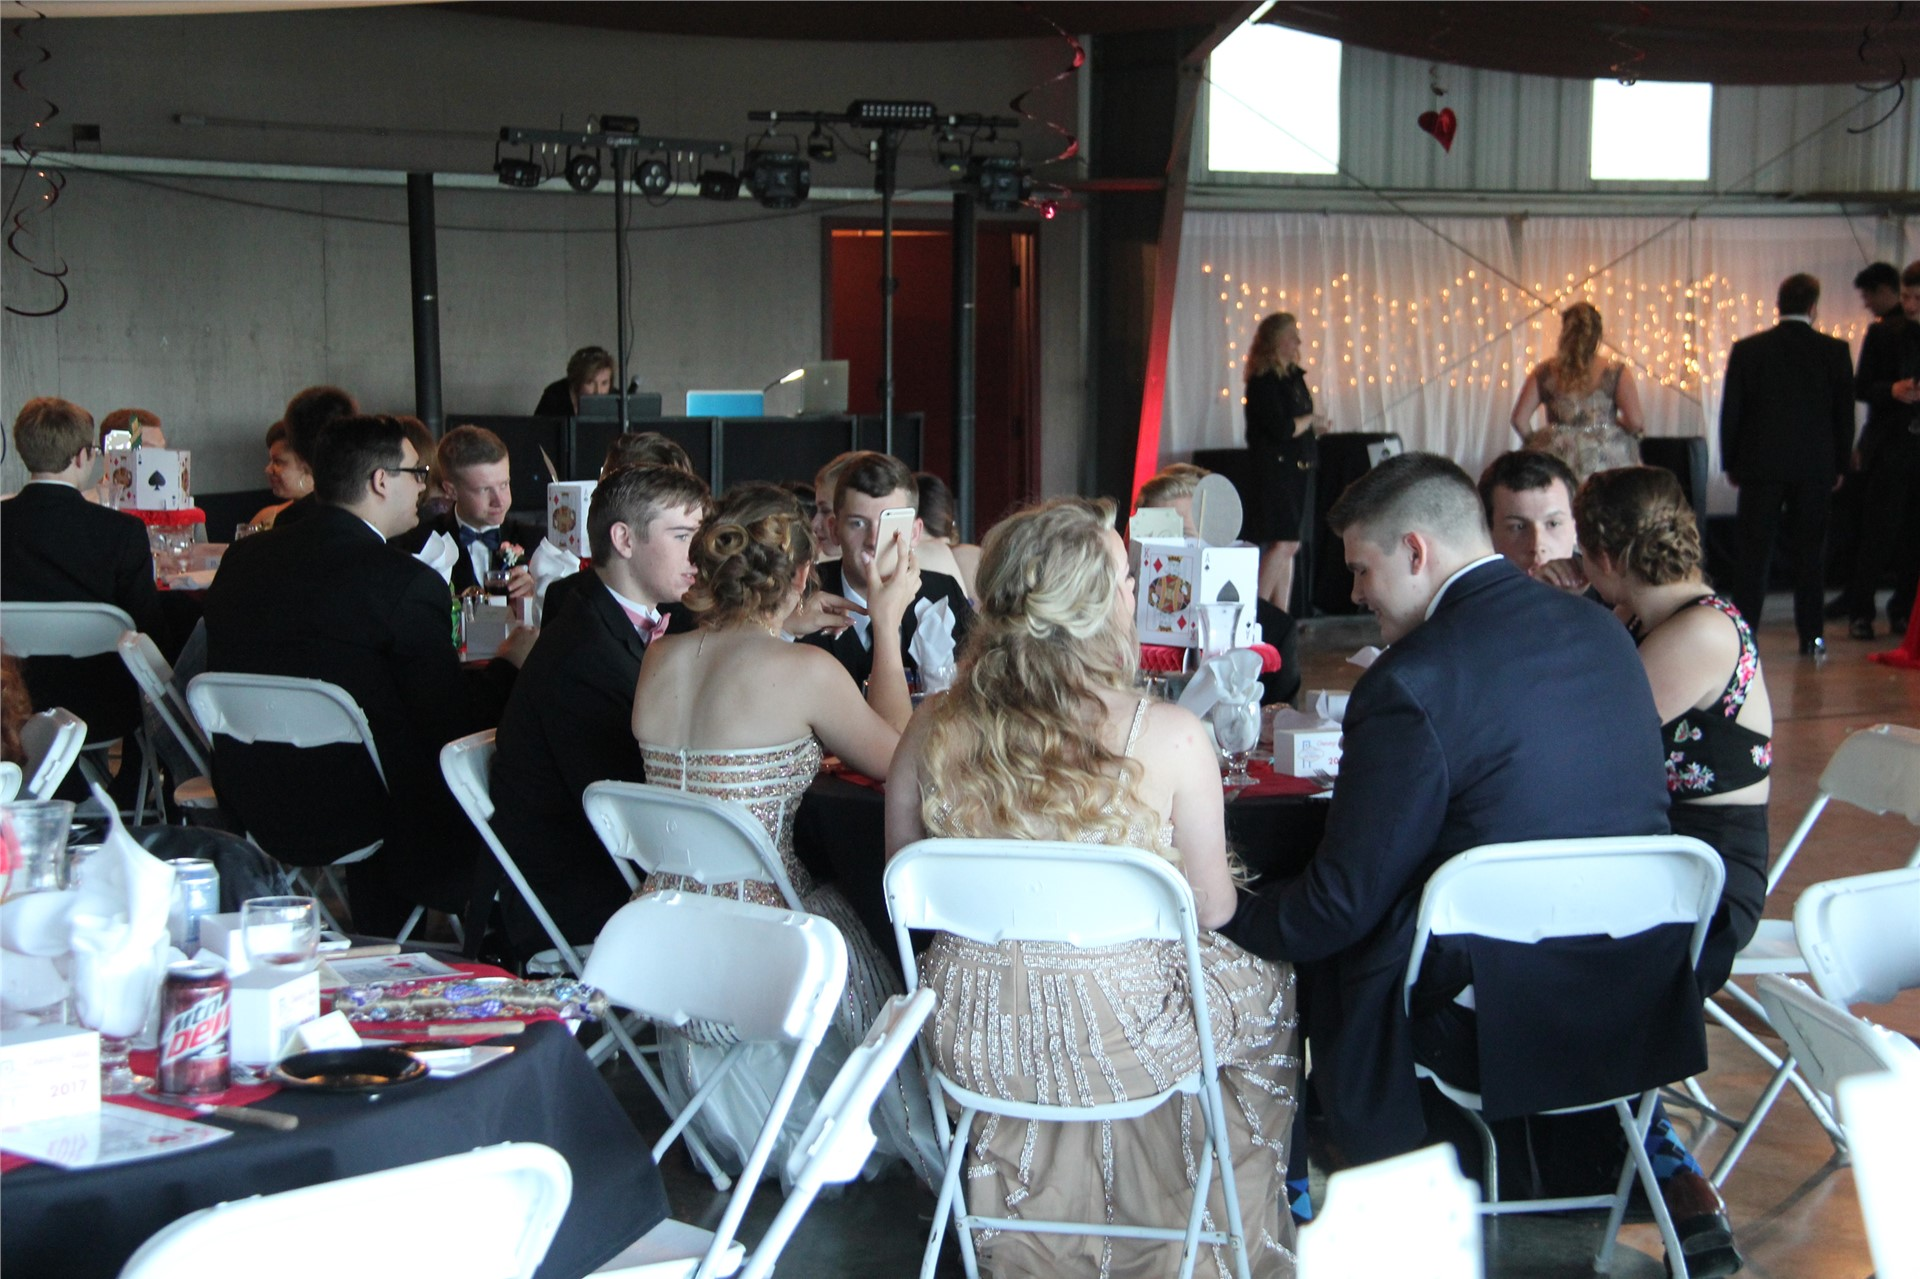 students sit and socialize at prom event